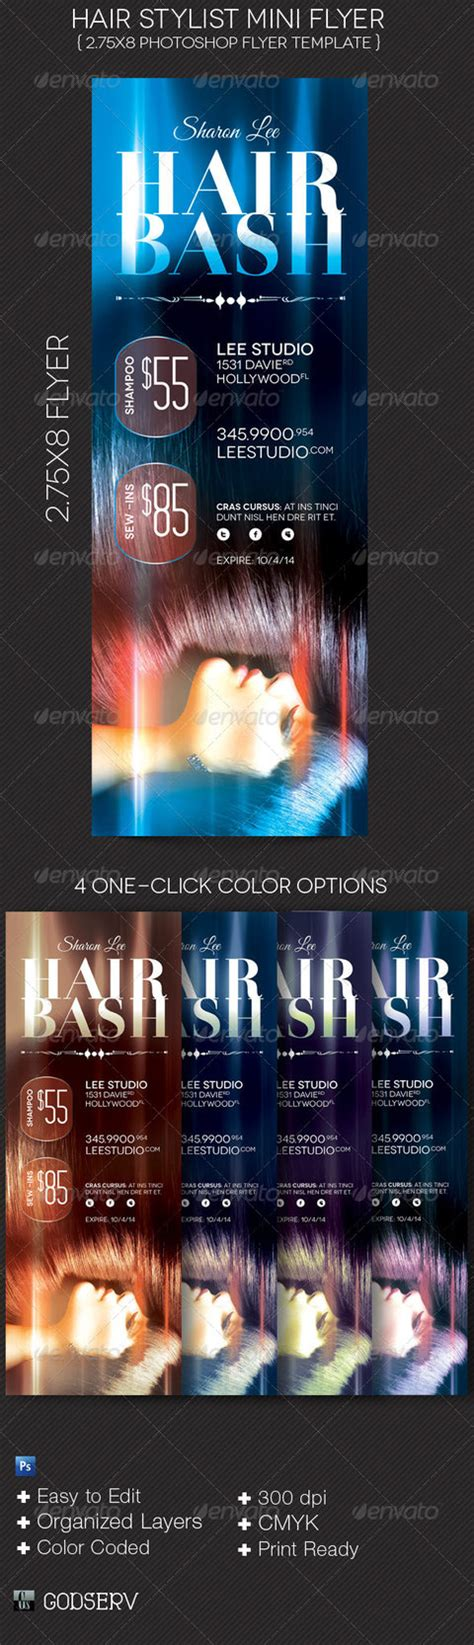 Mini Flyer Template Hair Stylist Mini Flyer Template By Godserv On Deviantart